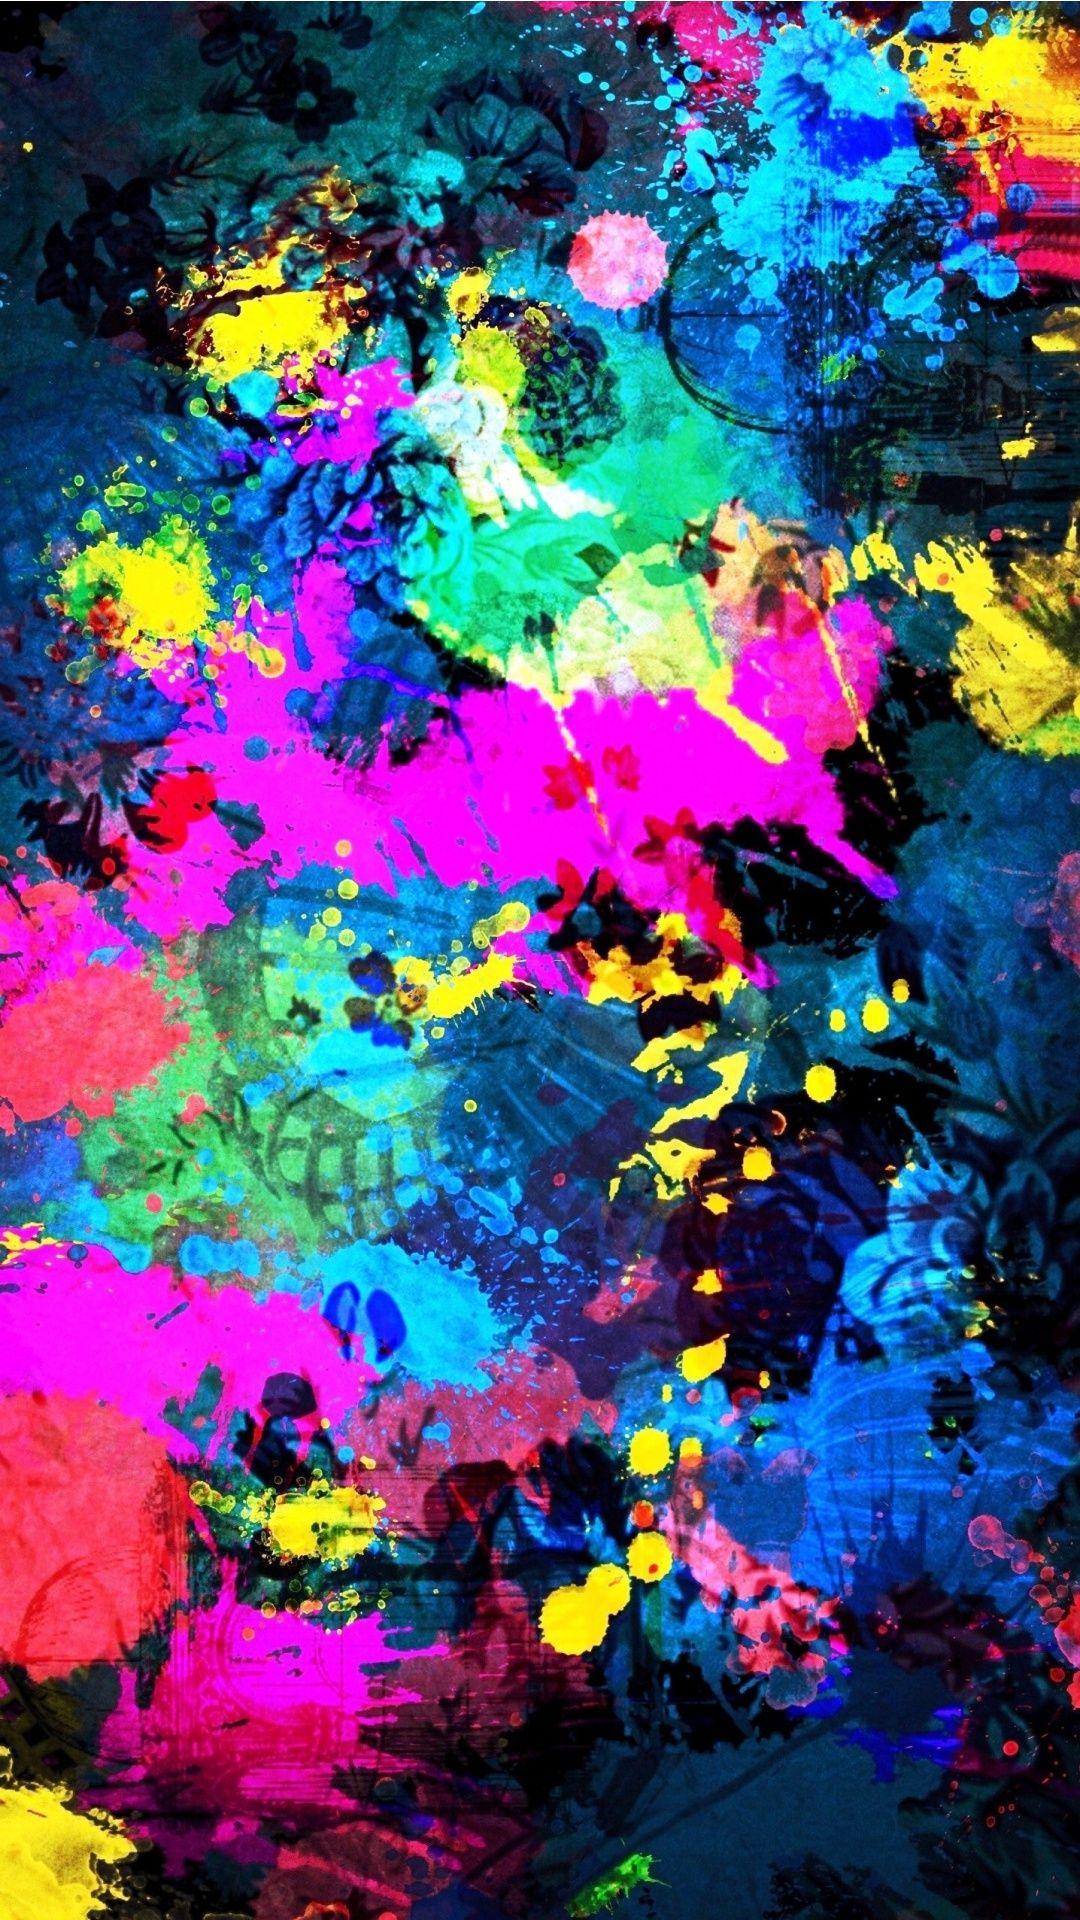 tap image for more beautiful iphone background! colorful splatter